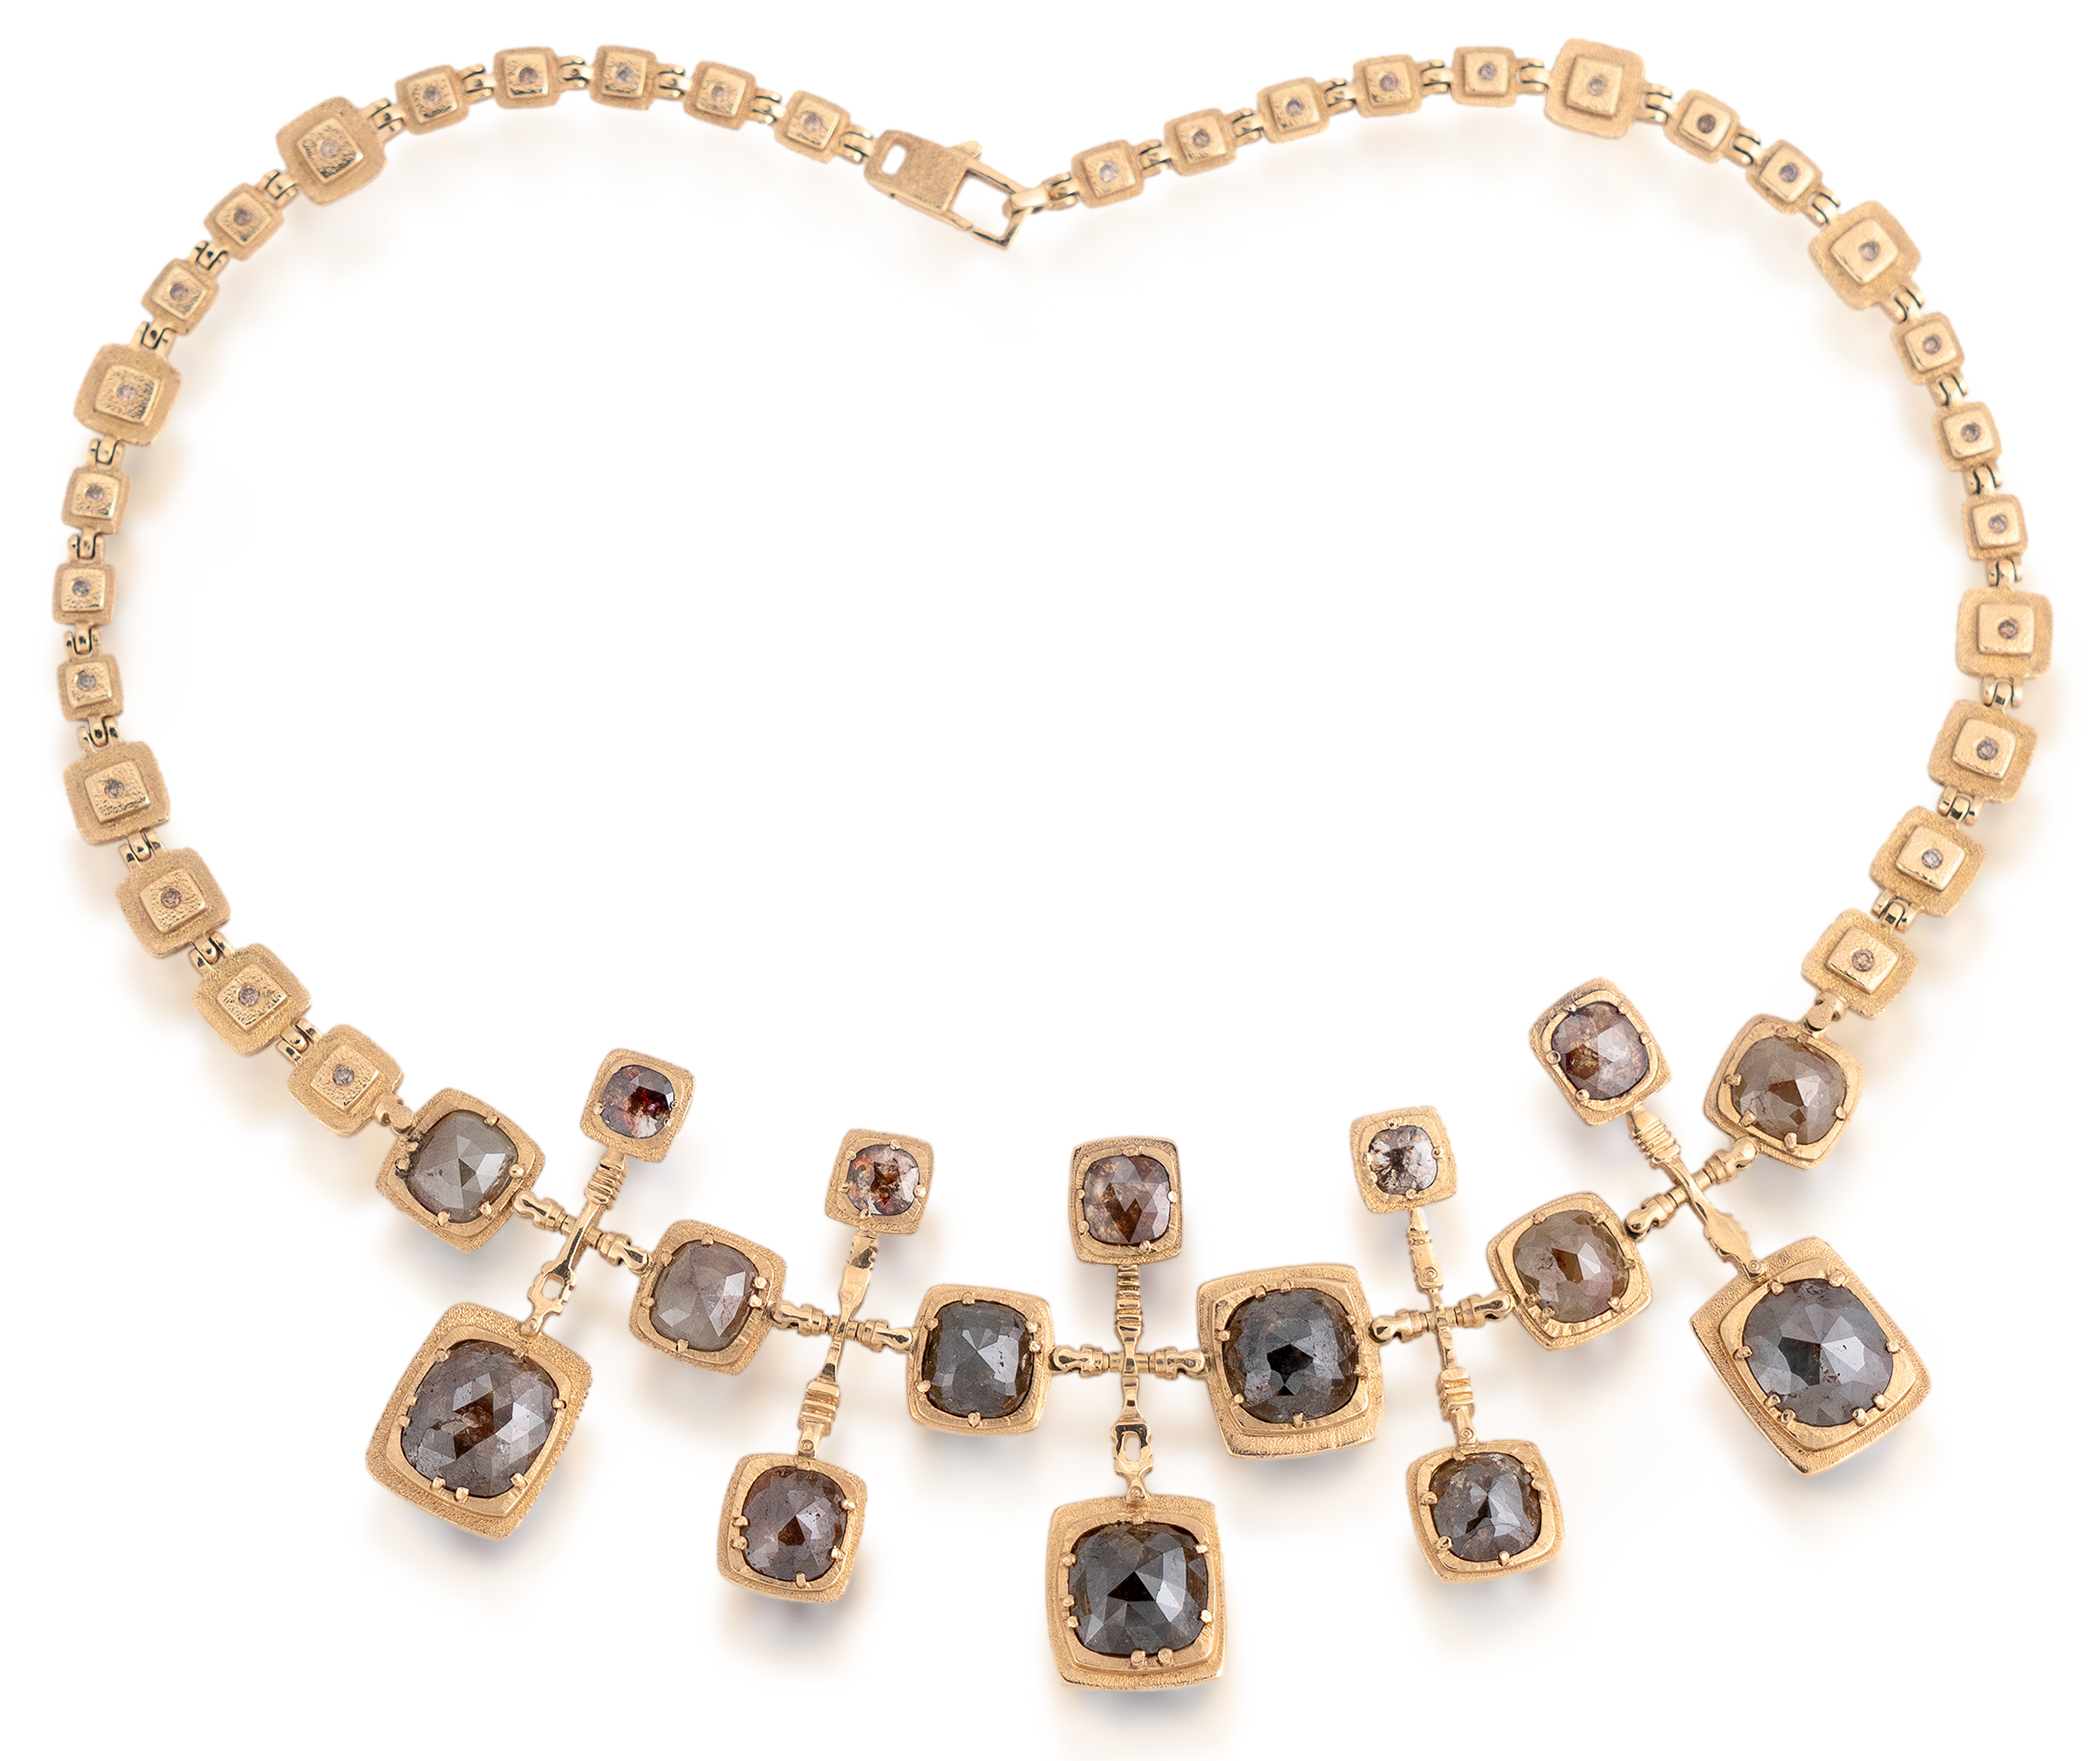 18K yellow gold necklace with rose-cut diamonds and brown diamonds